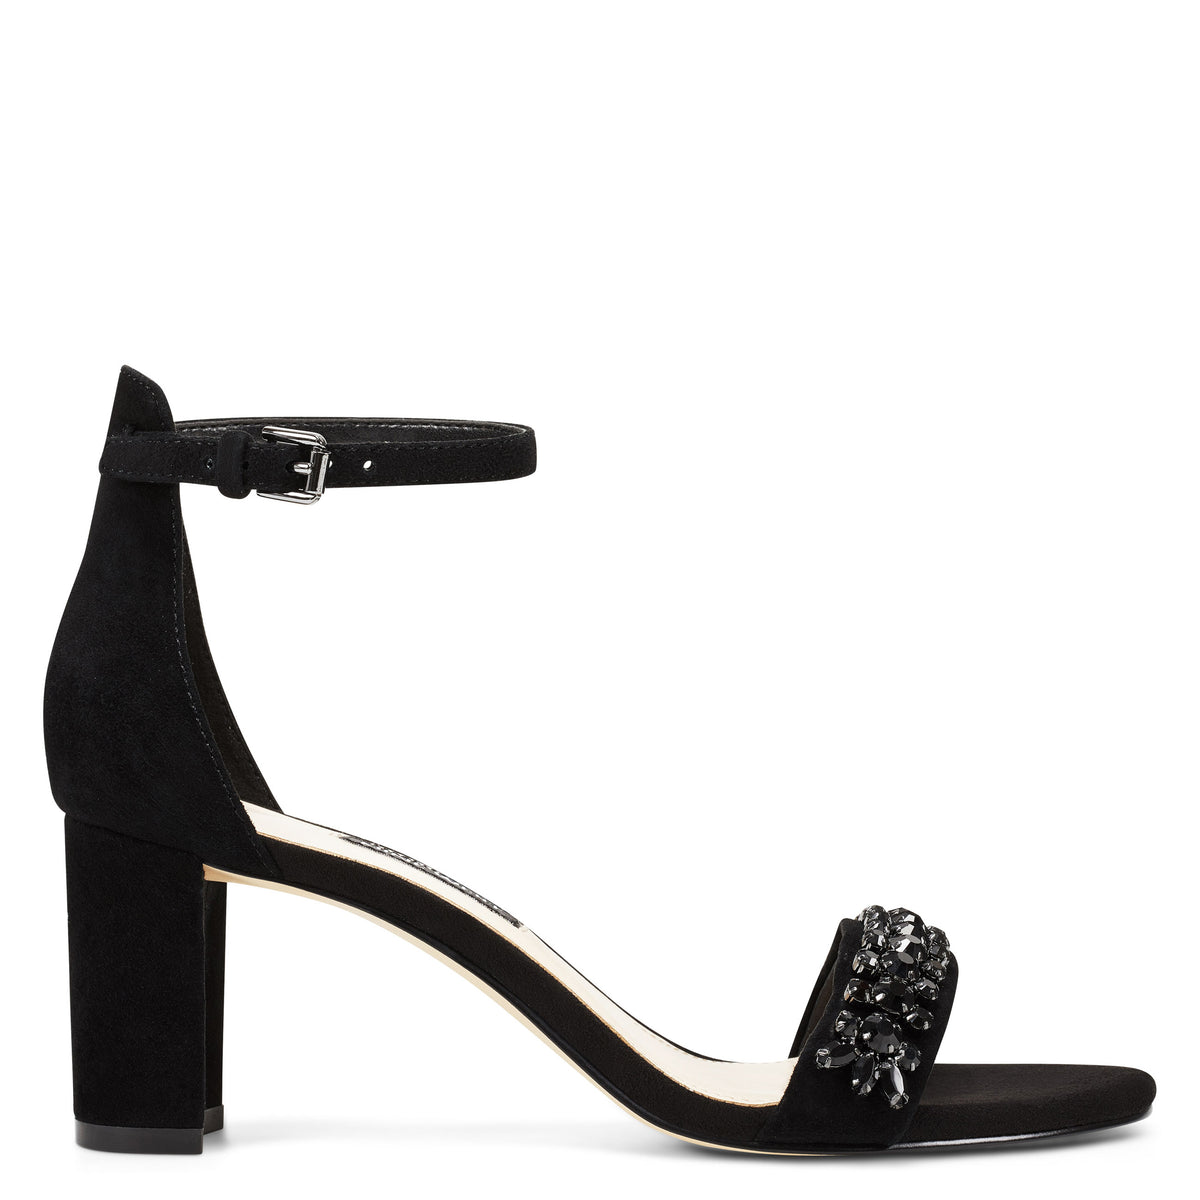 Perla dress sandal